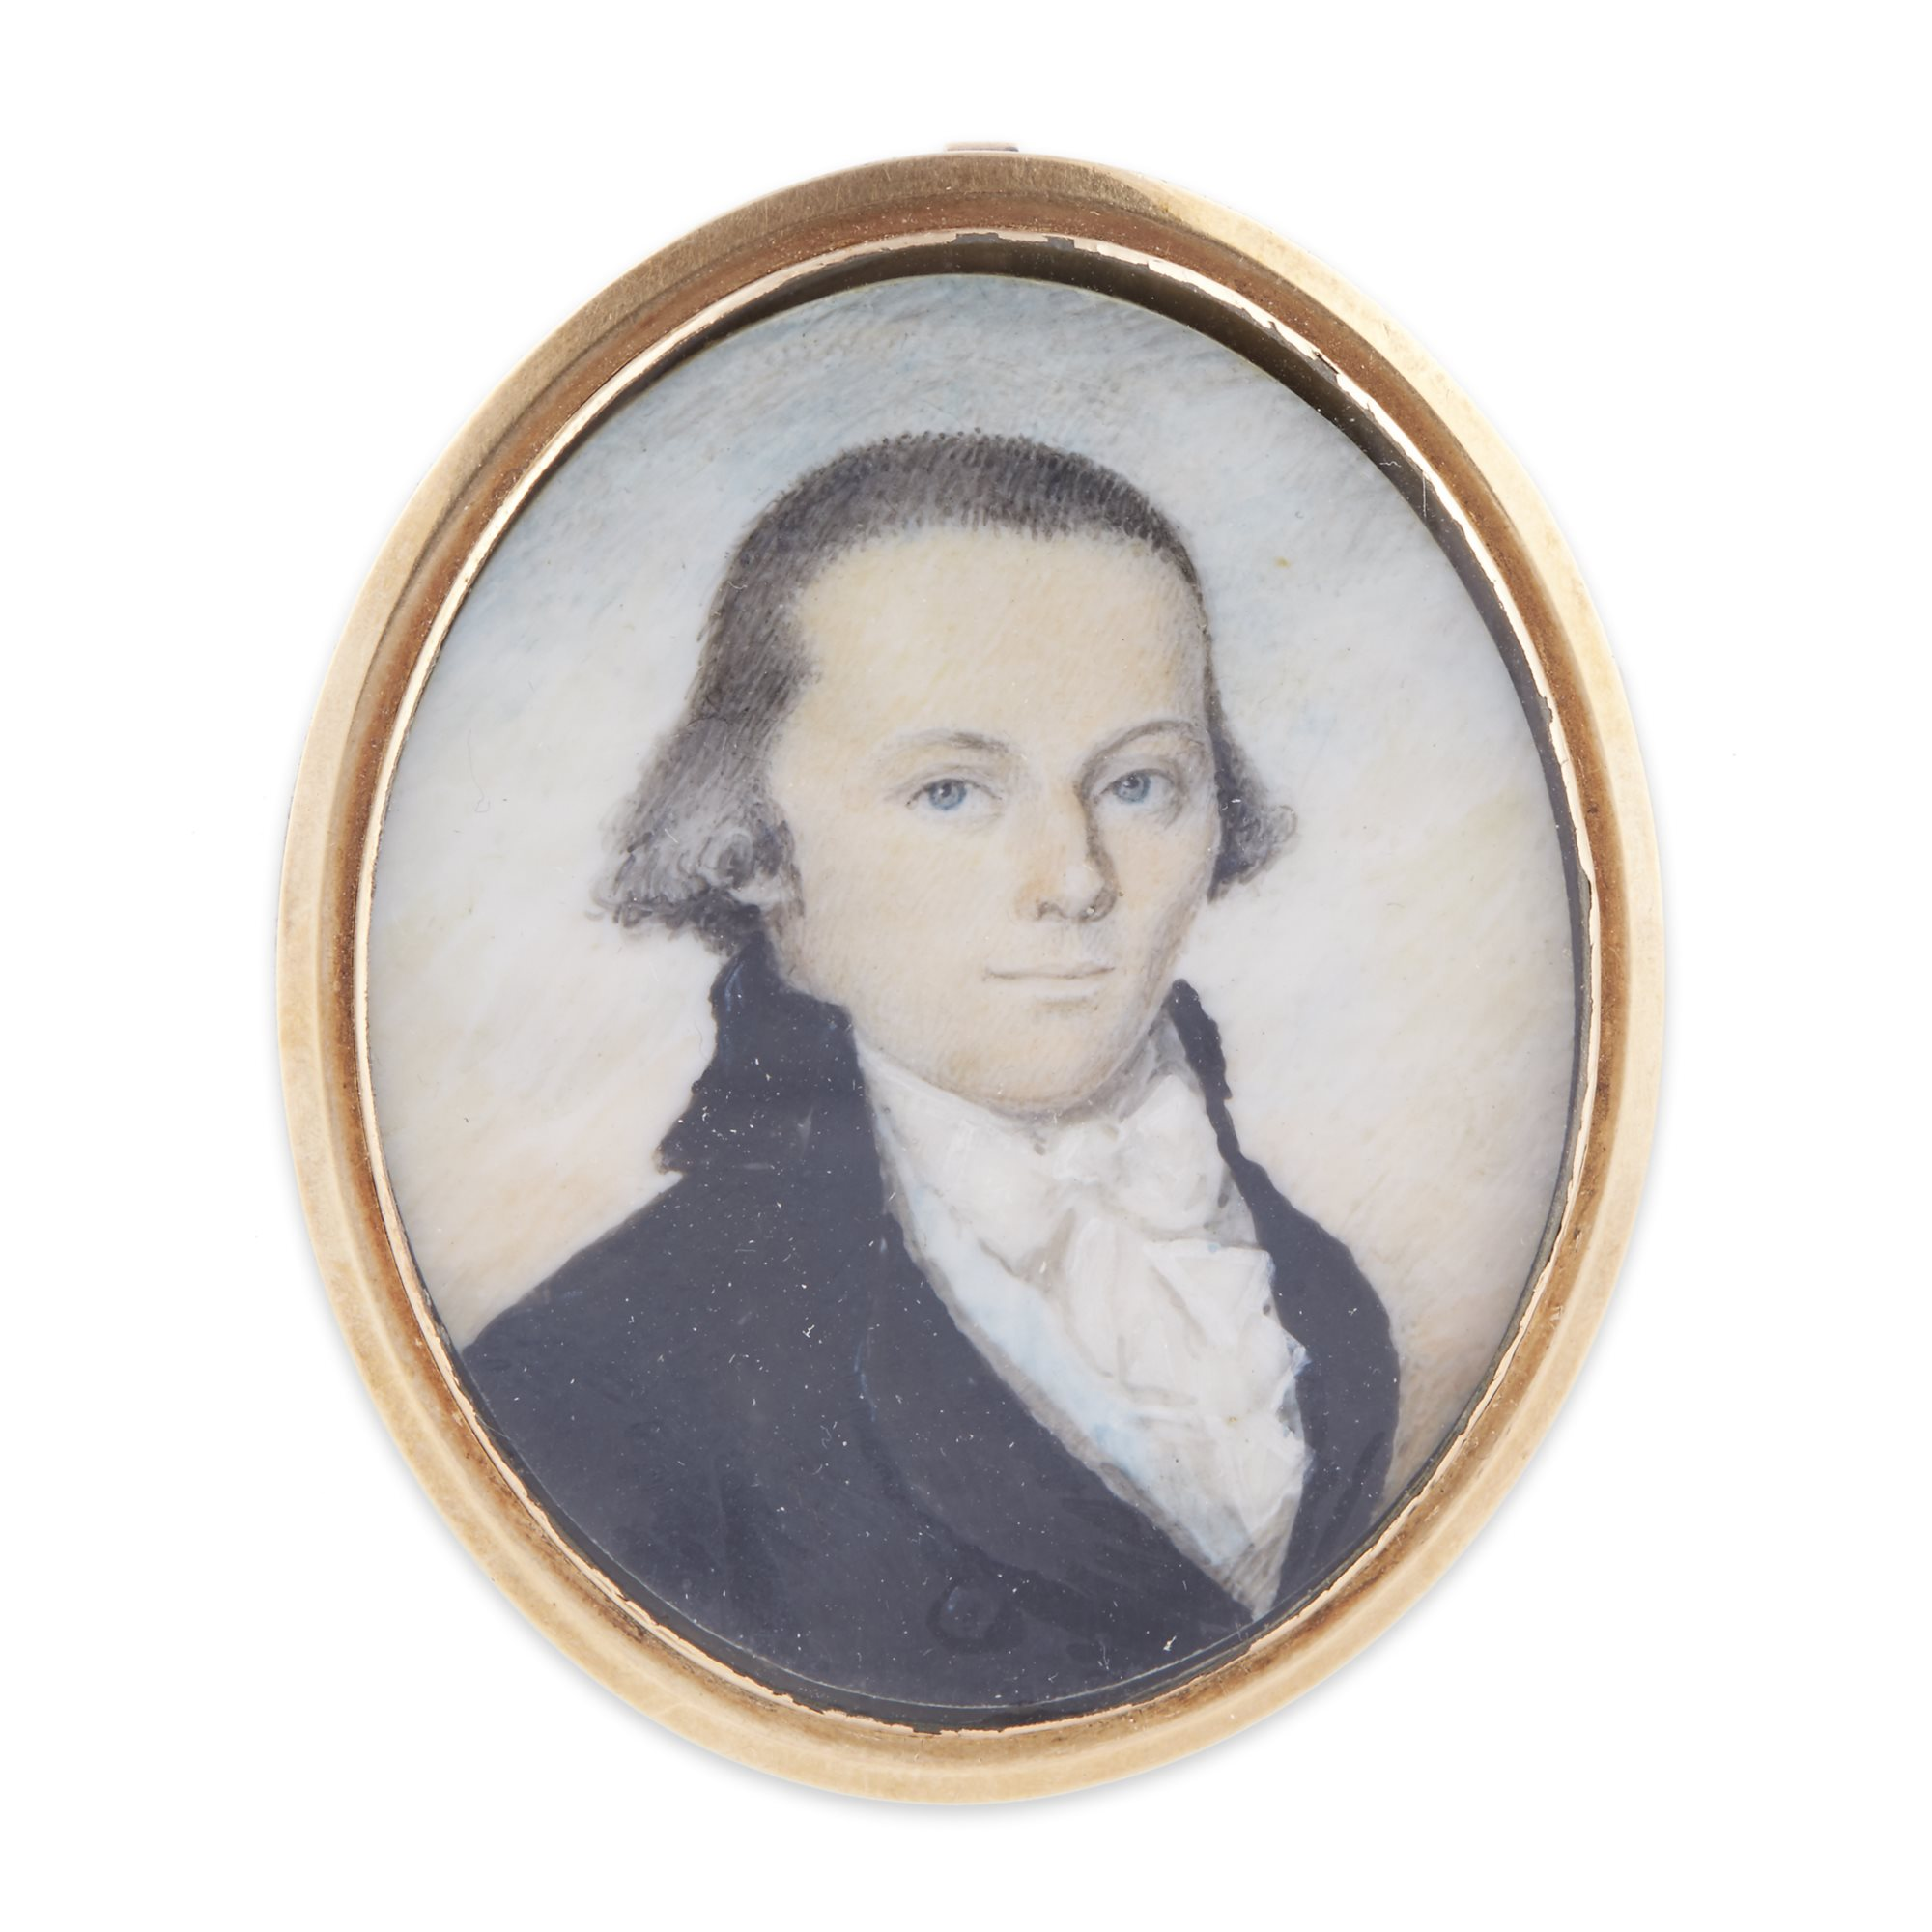 Portrait miniature of Samuel Griffin (1762-1812), attributed to William Lovett (1773-1801), Bostonm MA, circa 1785, to be included in Lot 34 with the watercolor of Harvard College on 04.30.19